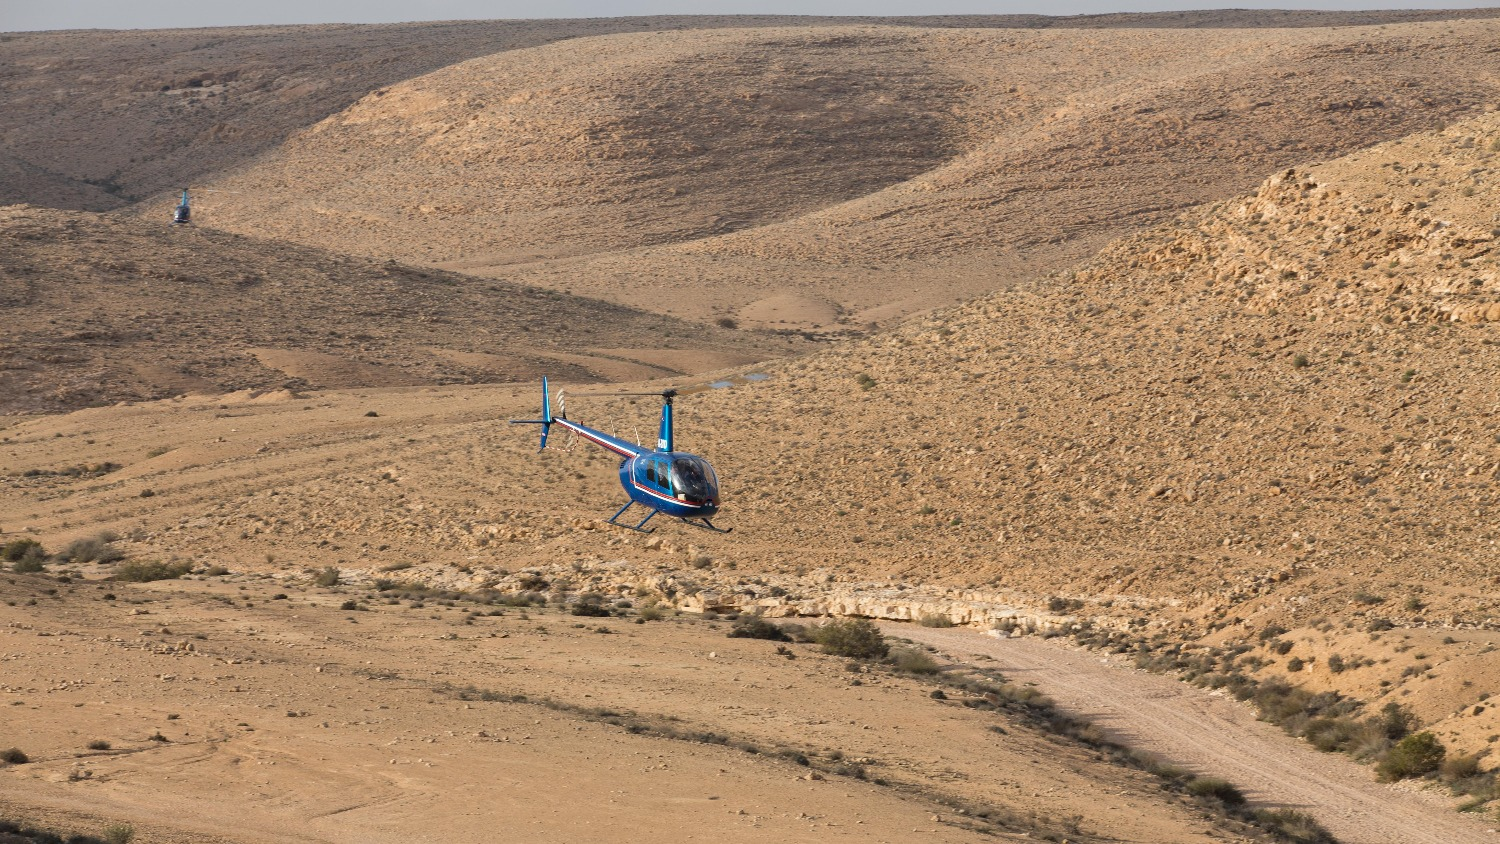 Helicopter ride to the Ramon Crater